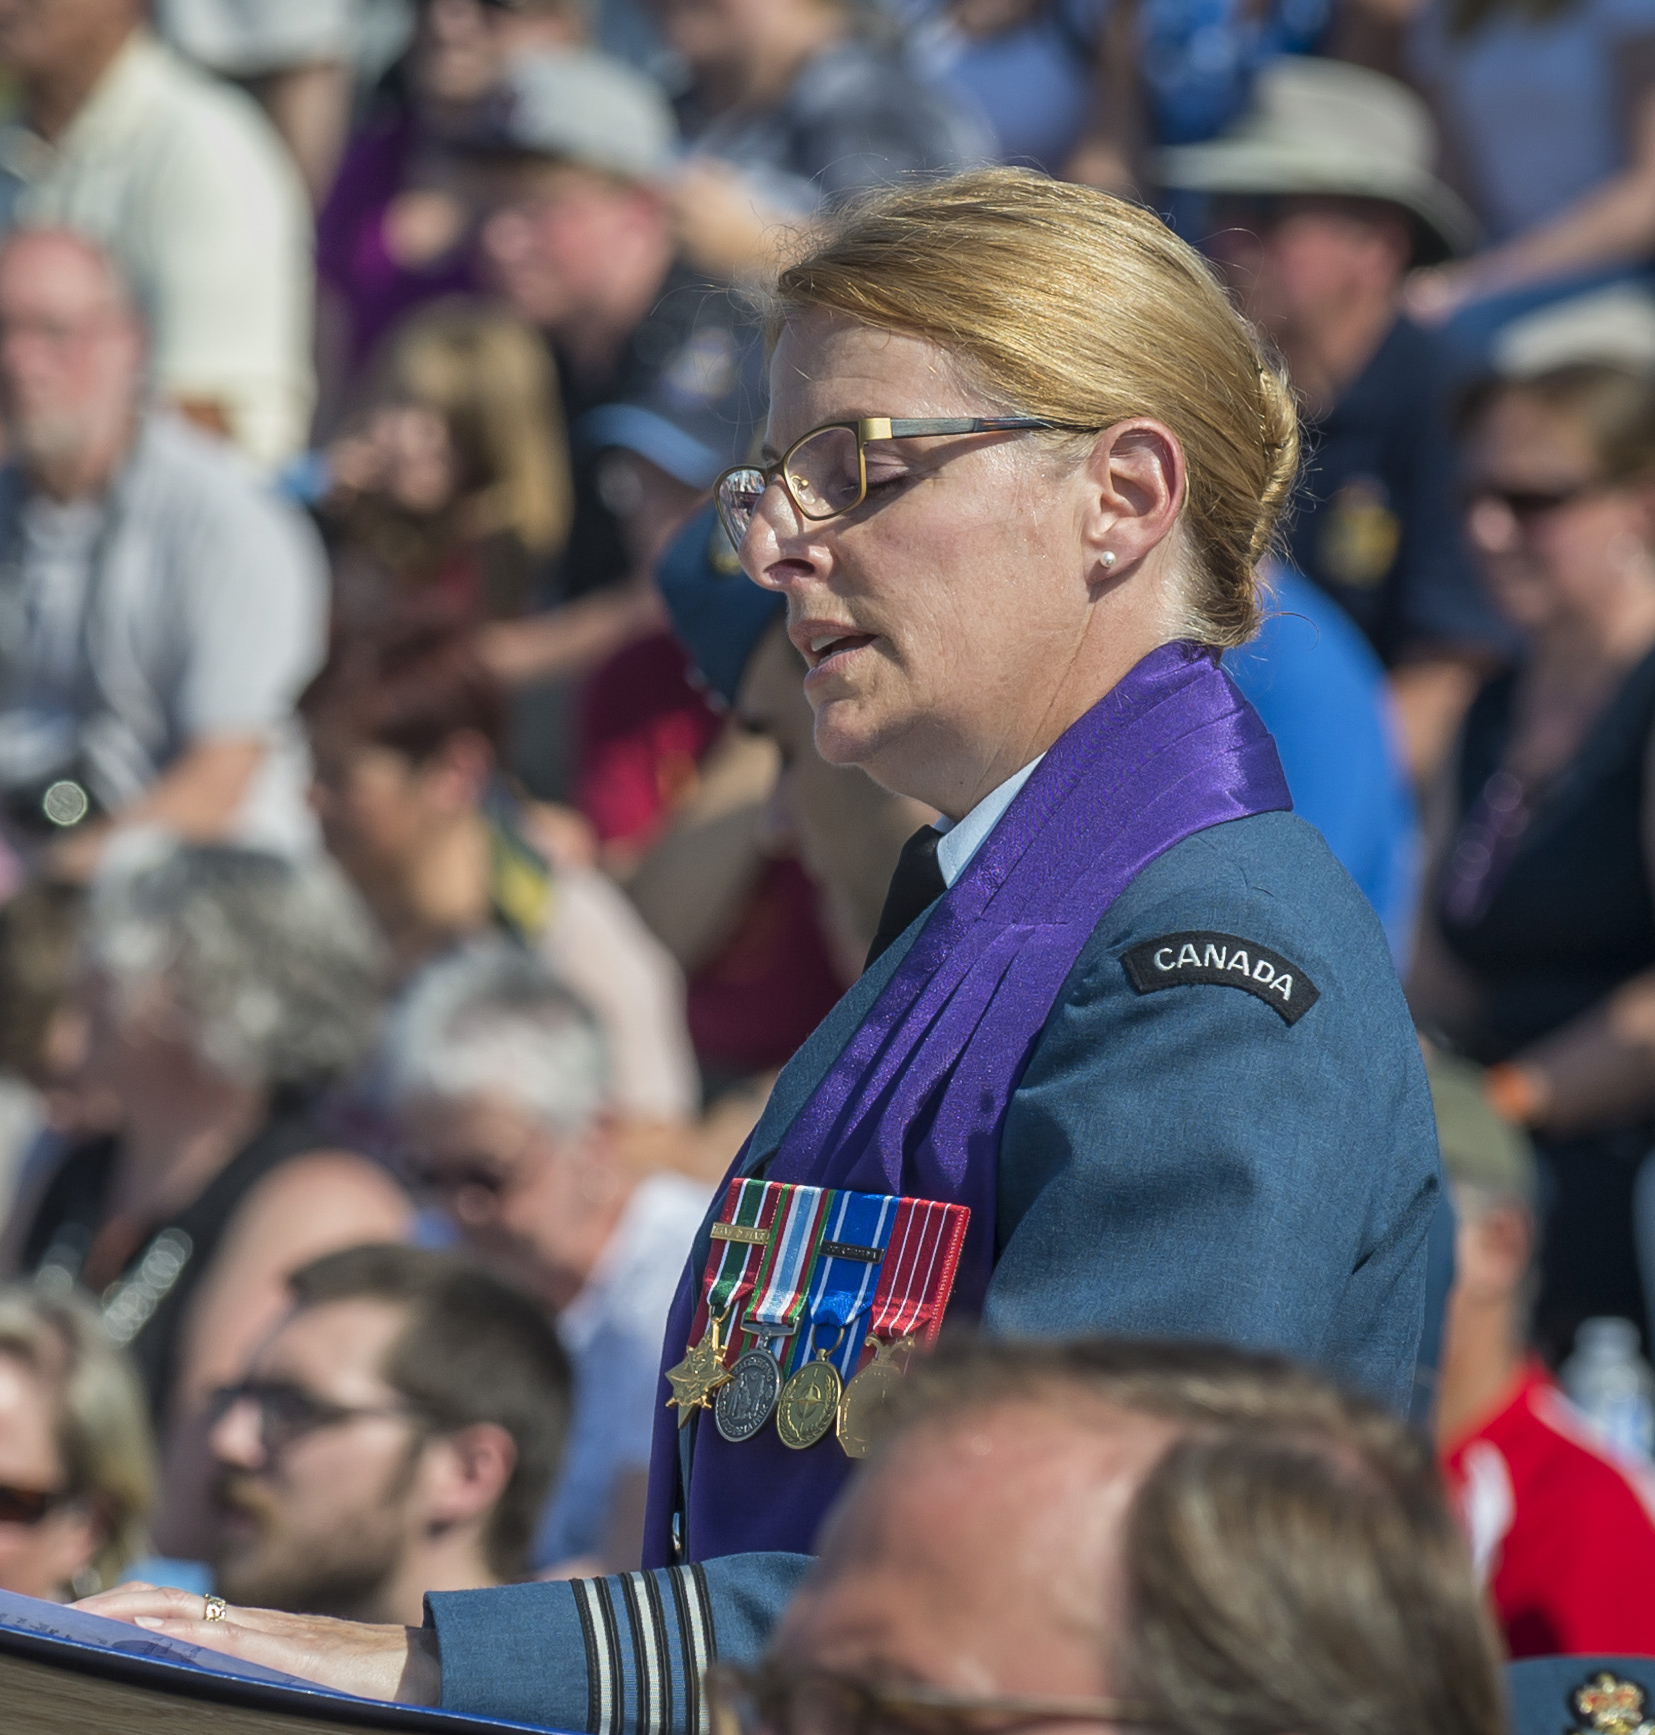 The RCAF's senior chaplain, Lieutenant-Colonel Martine Bélanger, delivers the benediction during the national Battle of Britain commemorative ceremony in Gatineau, Quebec, on September 17, 2017. PHOTO: Corporal Alana Morin, FA03-2017-0119-104